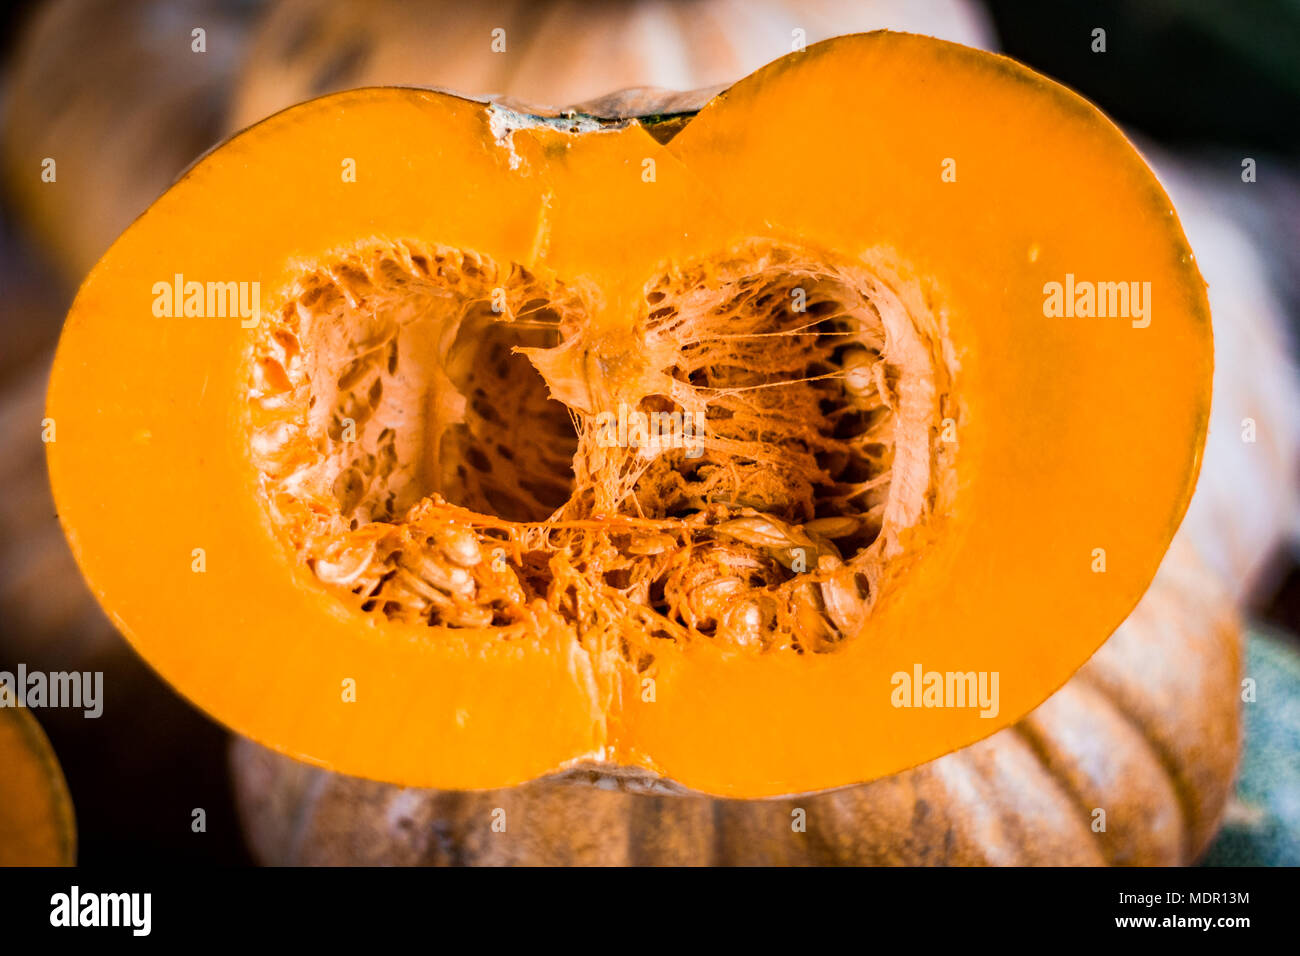 cut pumpkin displayed for sale at vegetable market Stock Photo